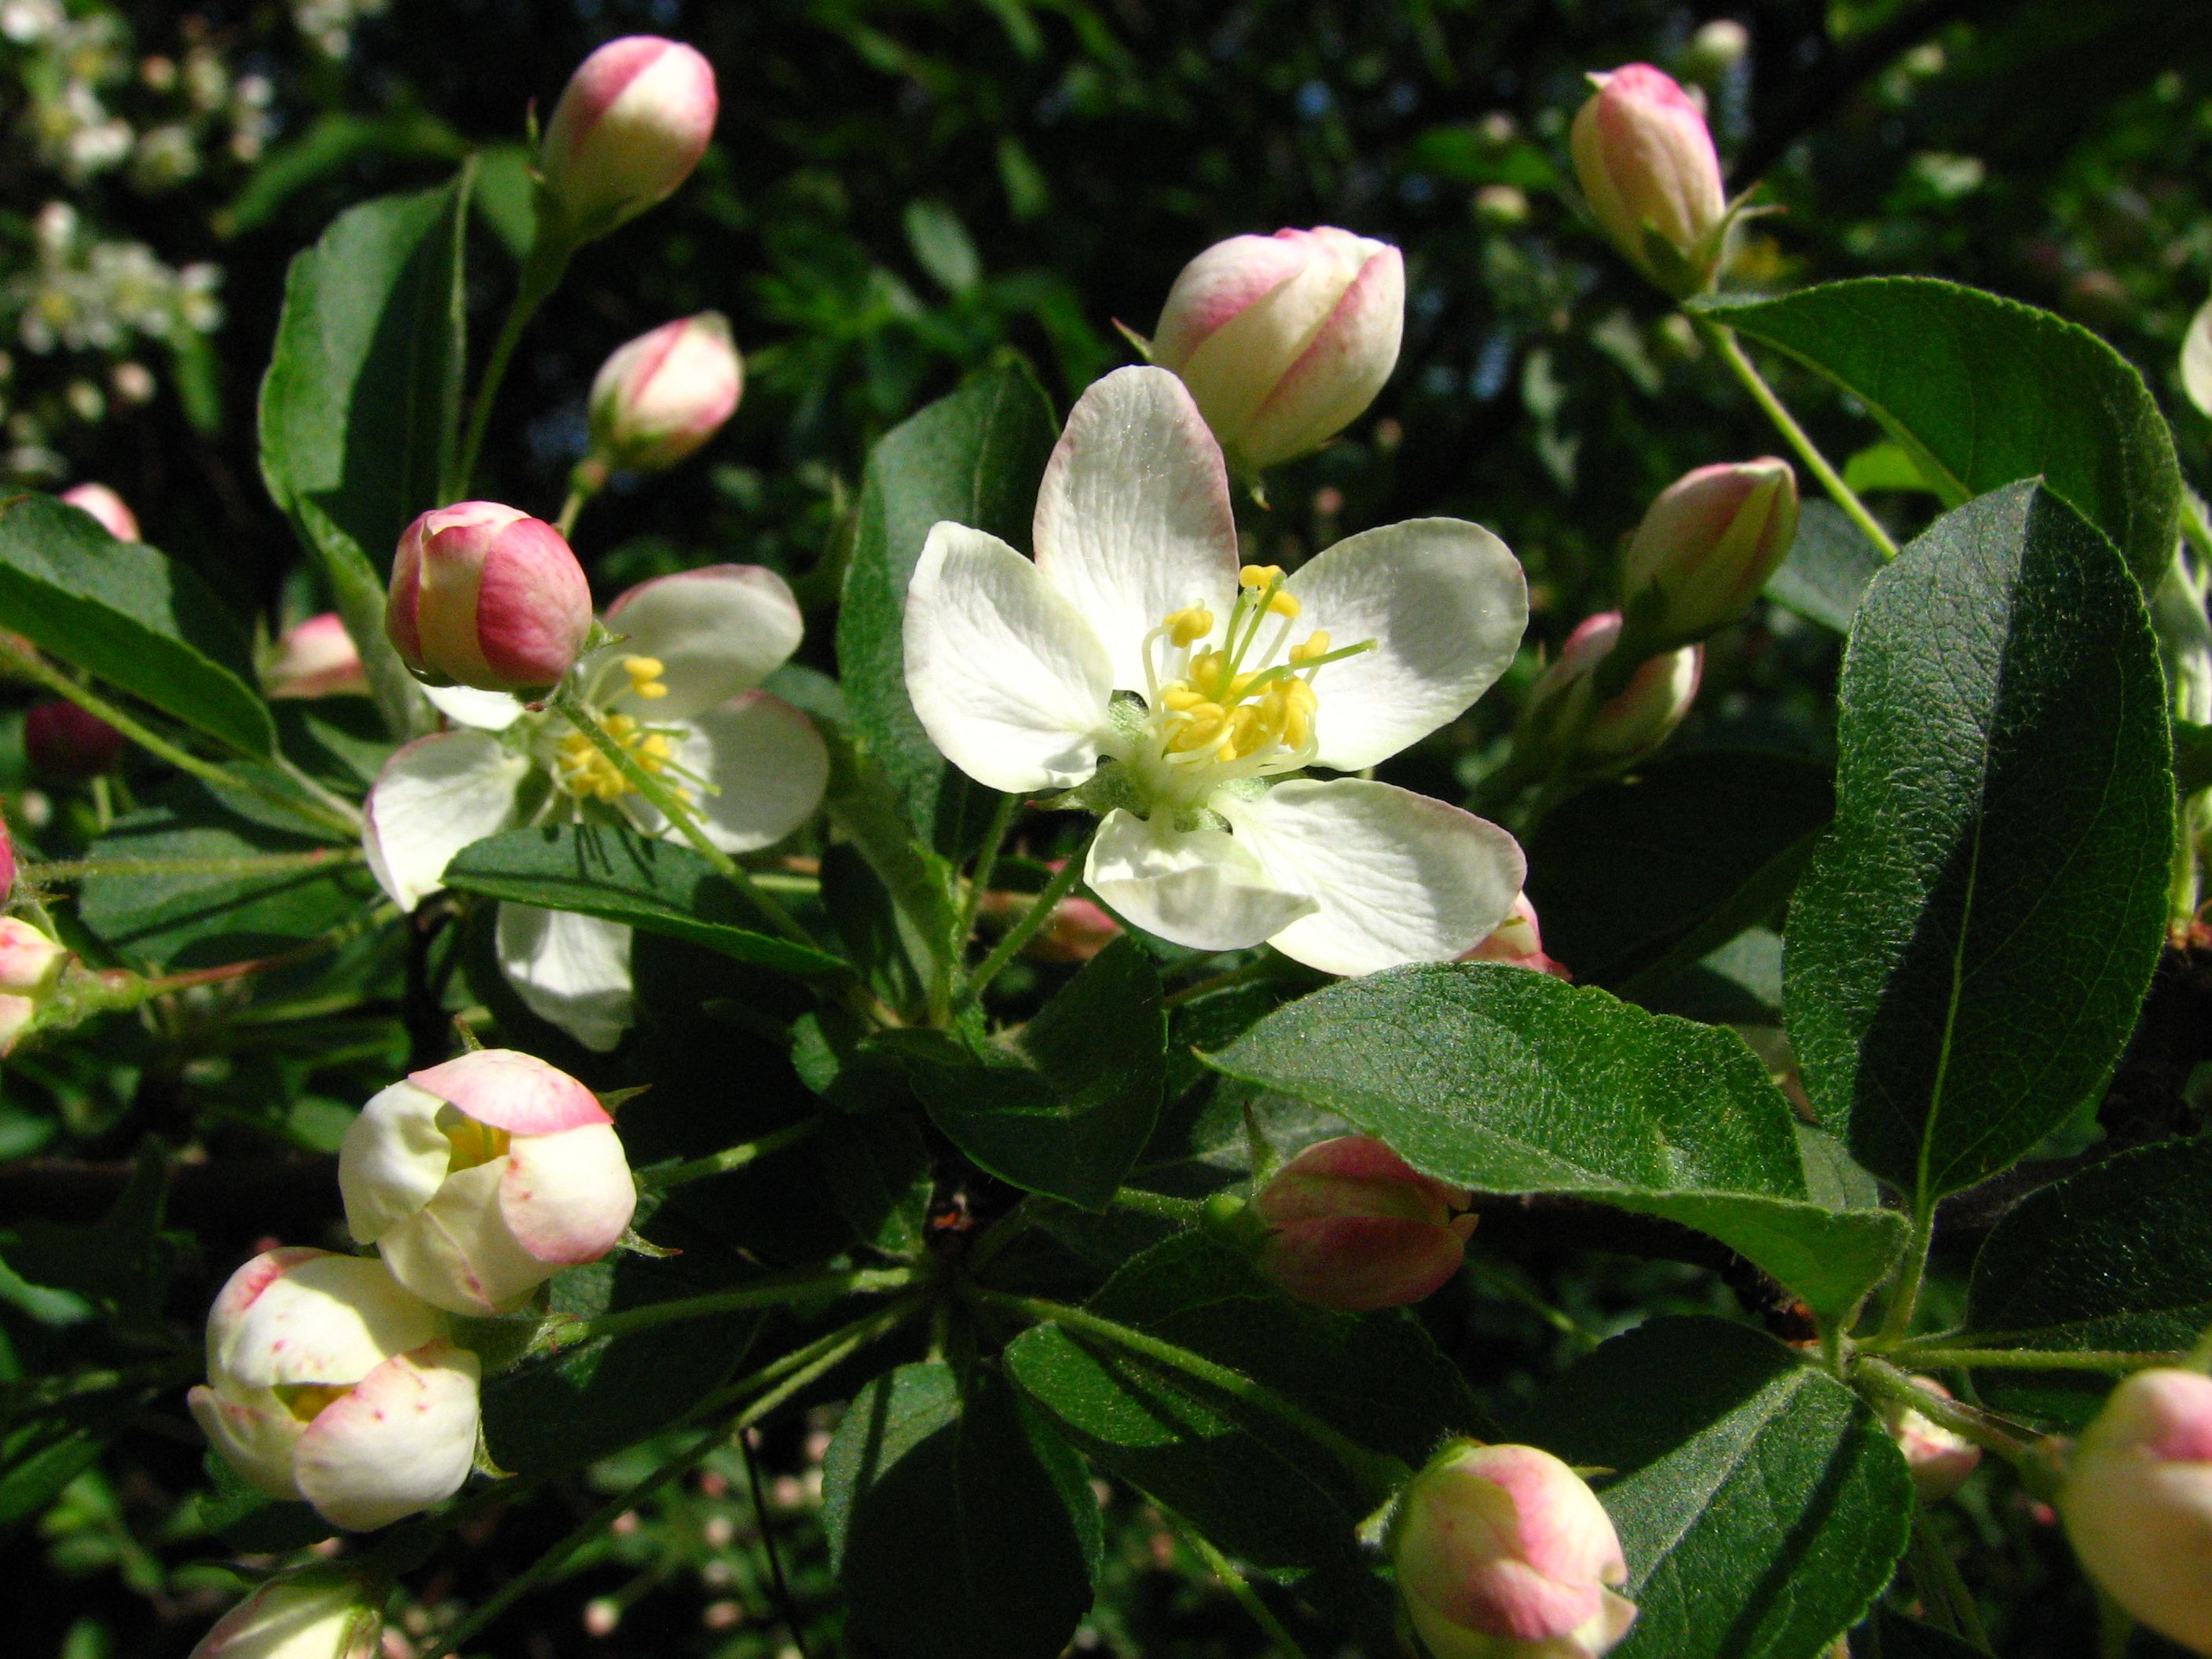 Malus sargentii - Google Search